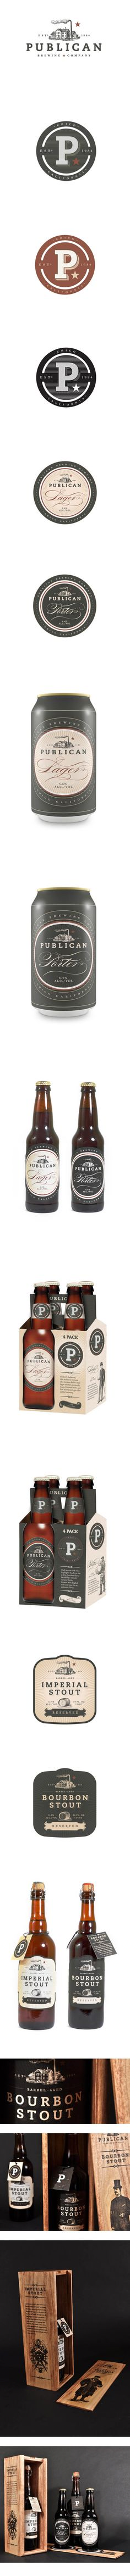 Publican Brewery *** Package Design and Brand identity.